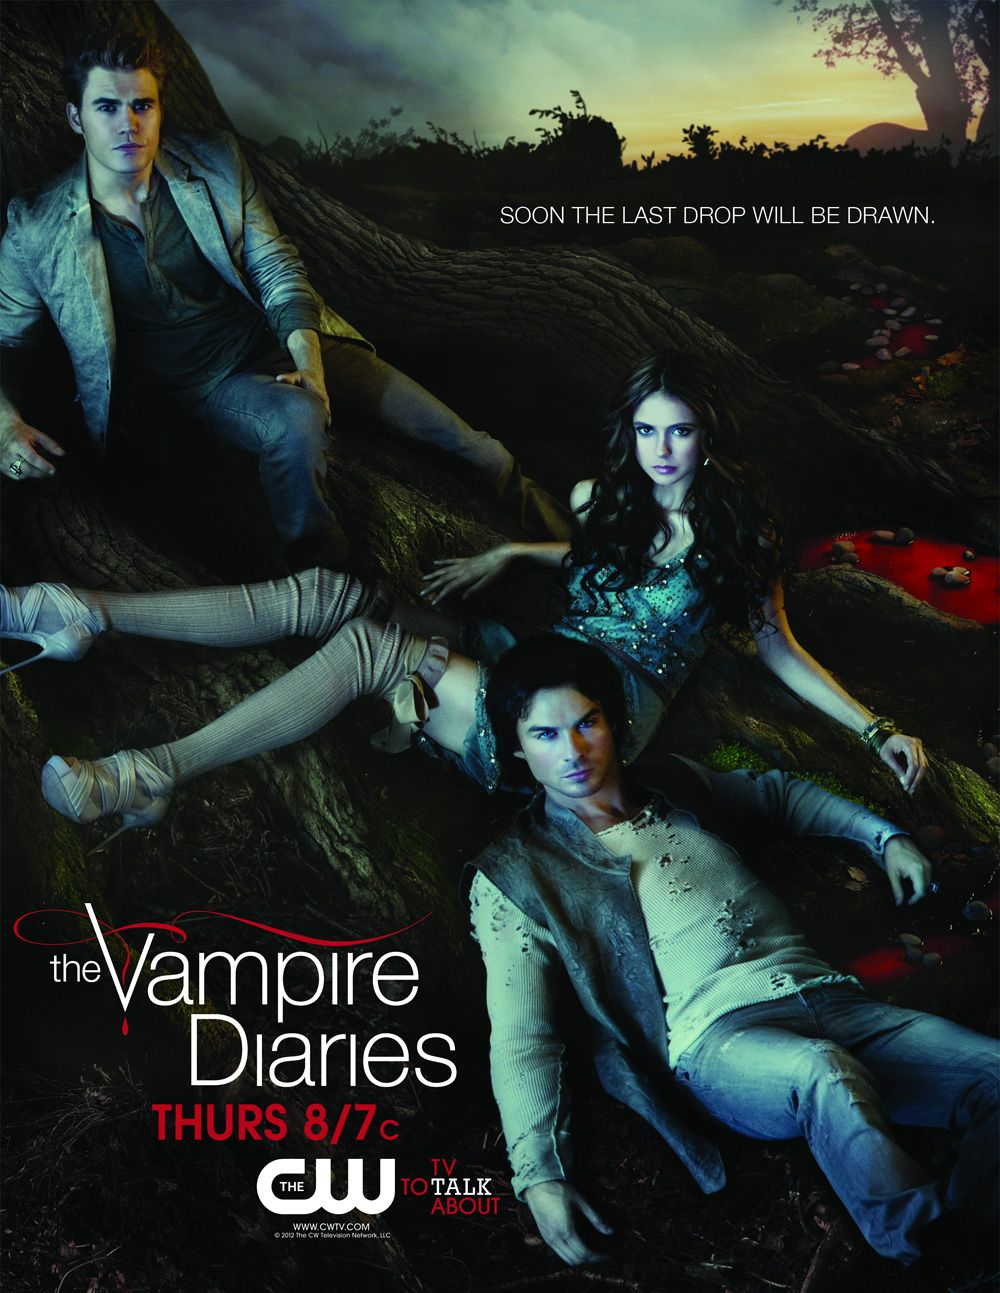 The Vampire Diaries S01-06 DVD | S06E10 HDTV |720O Thevampirediariess3post